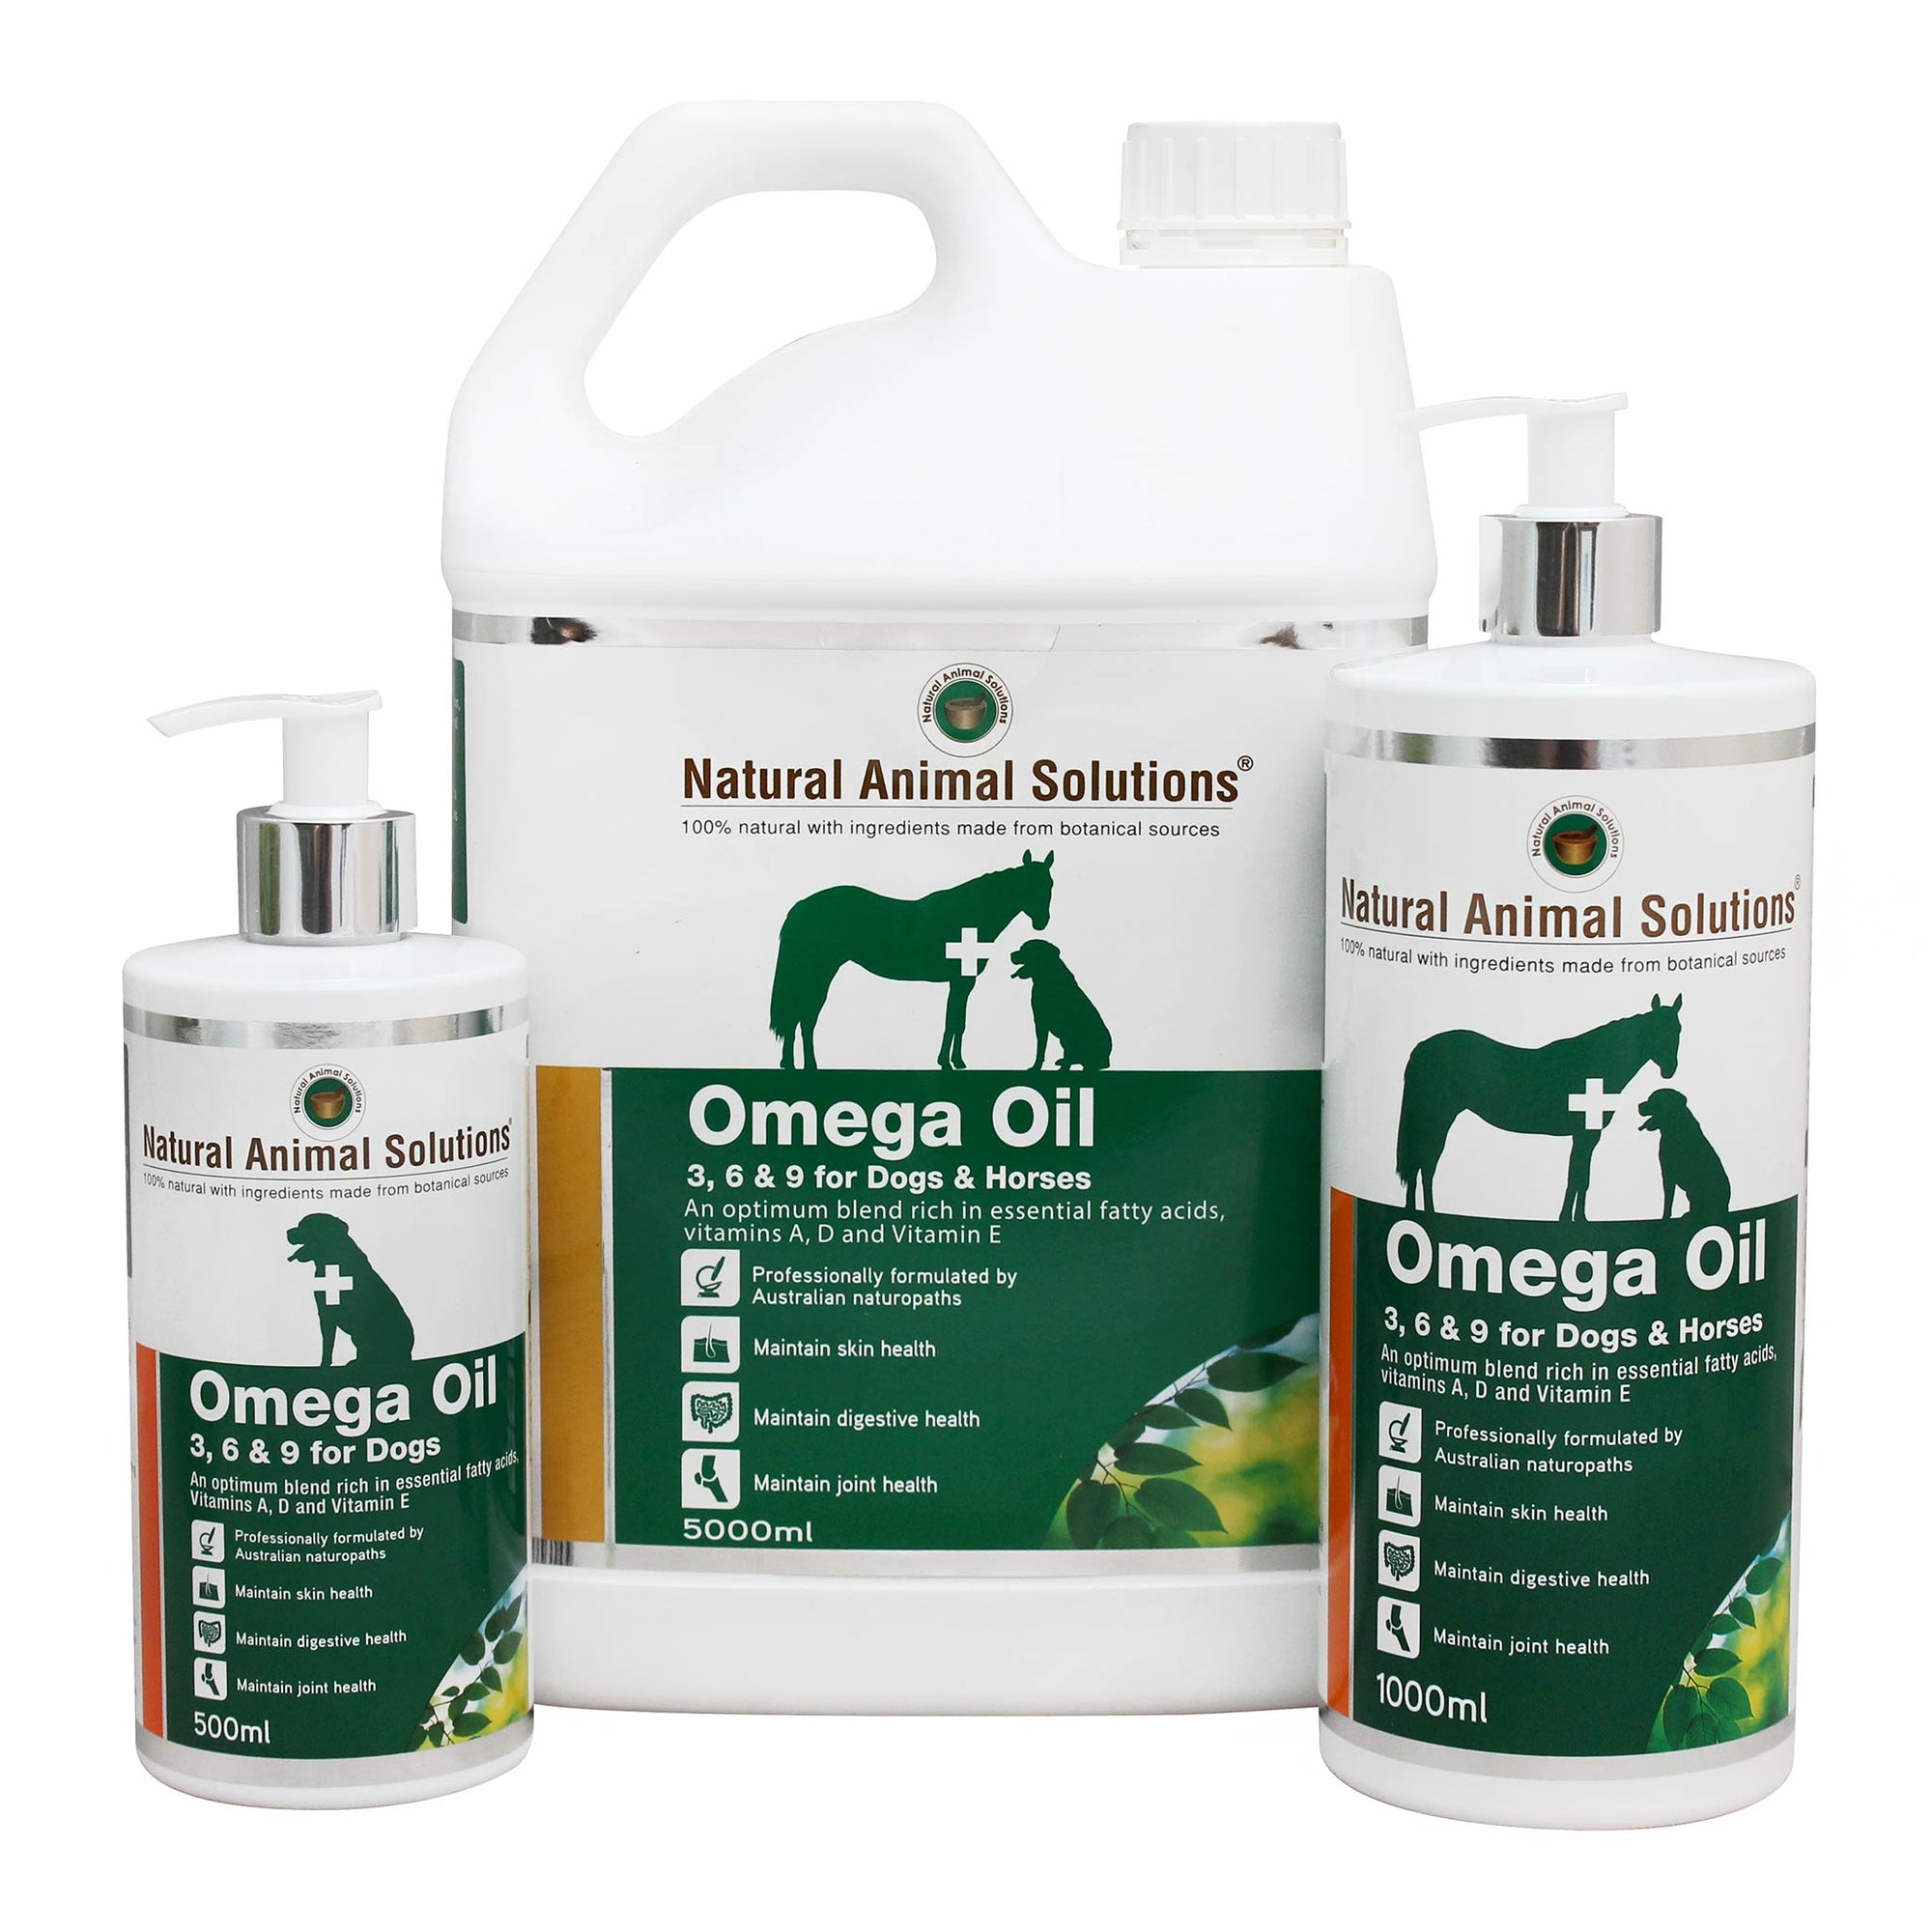 Natural Animal Solutions Omega 3, 6 & 9 Oil for Dogs and Horses